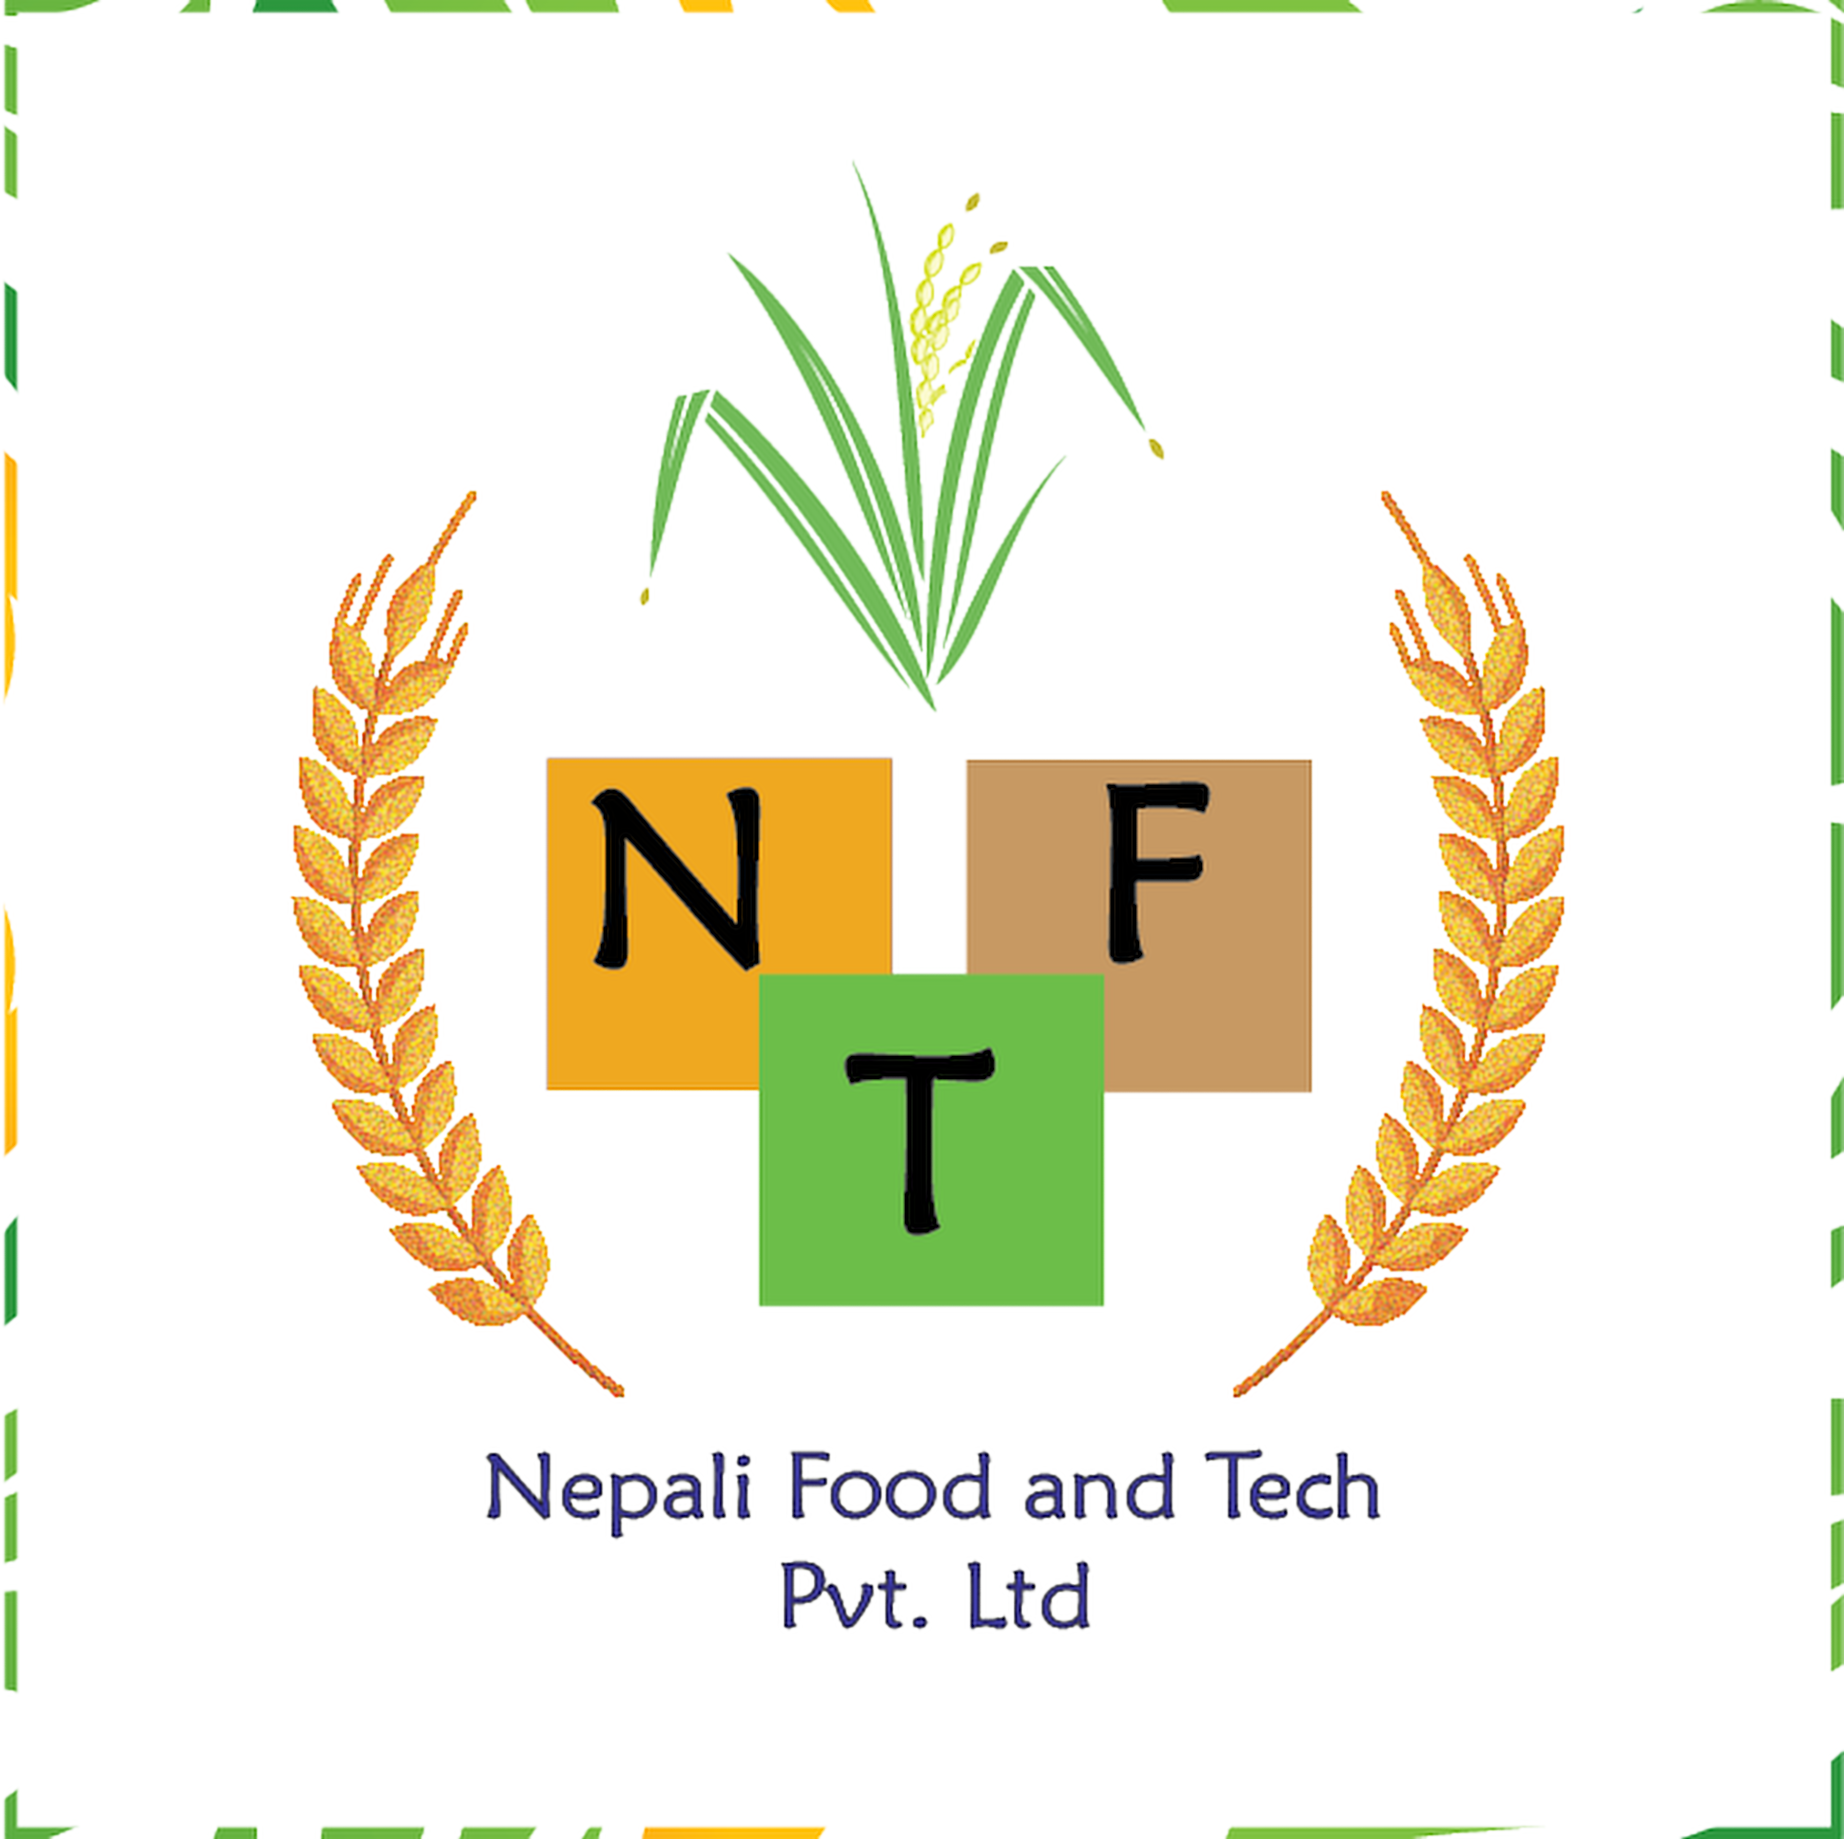 Nepali Food and Tech